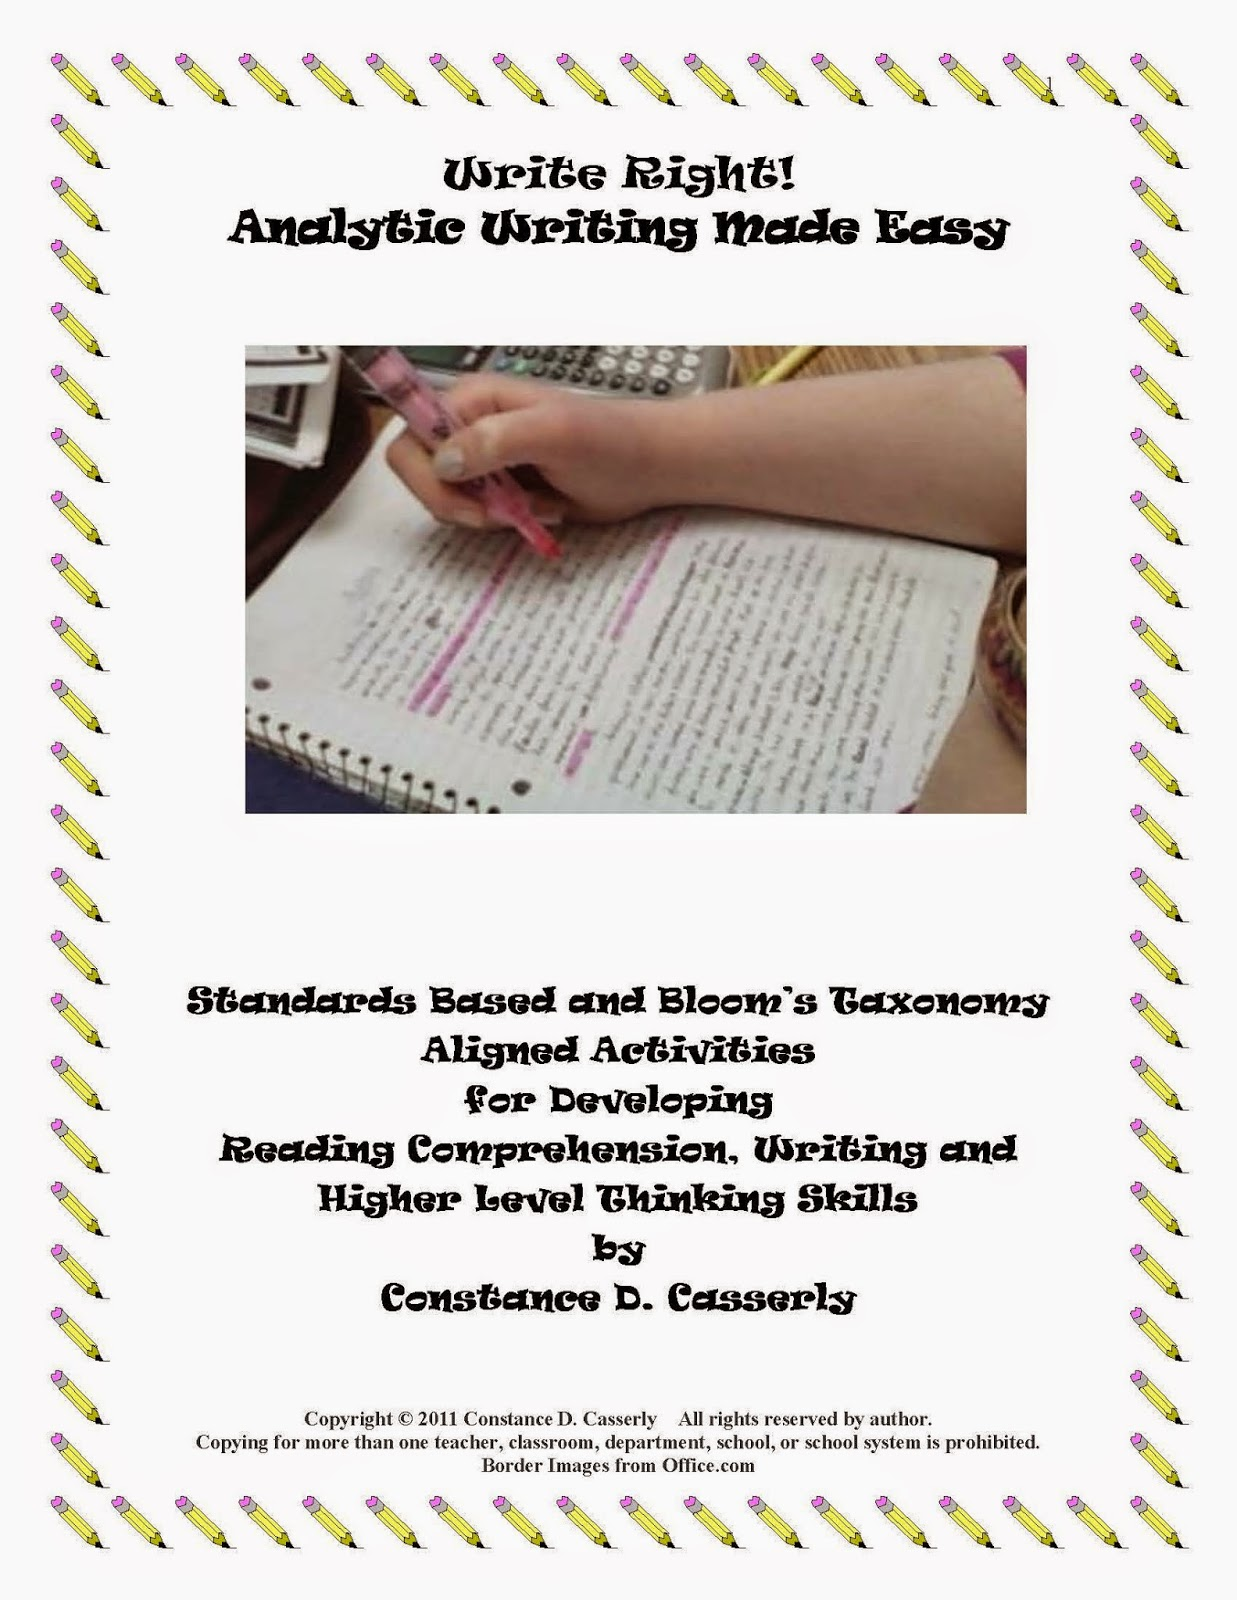 Writing: Write Right! Analytic Writing Made Easy cover